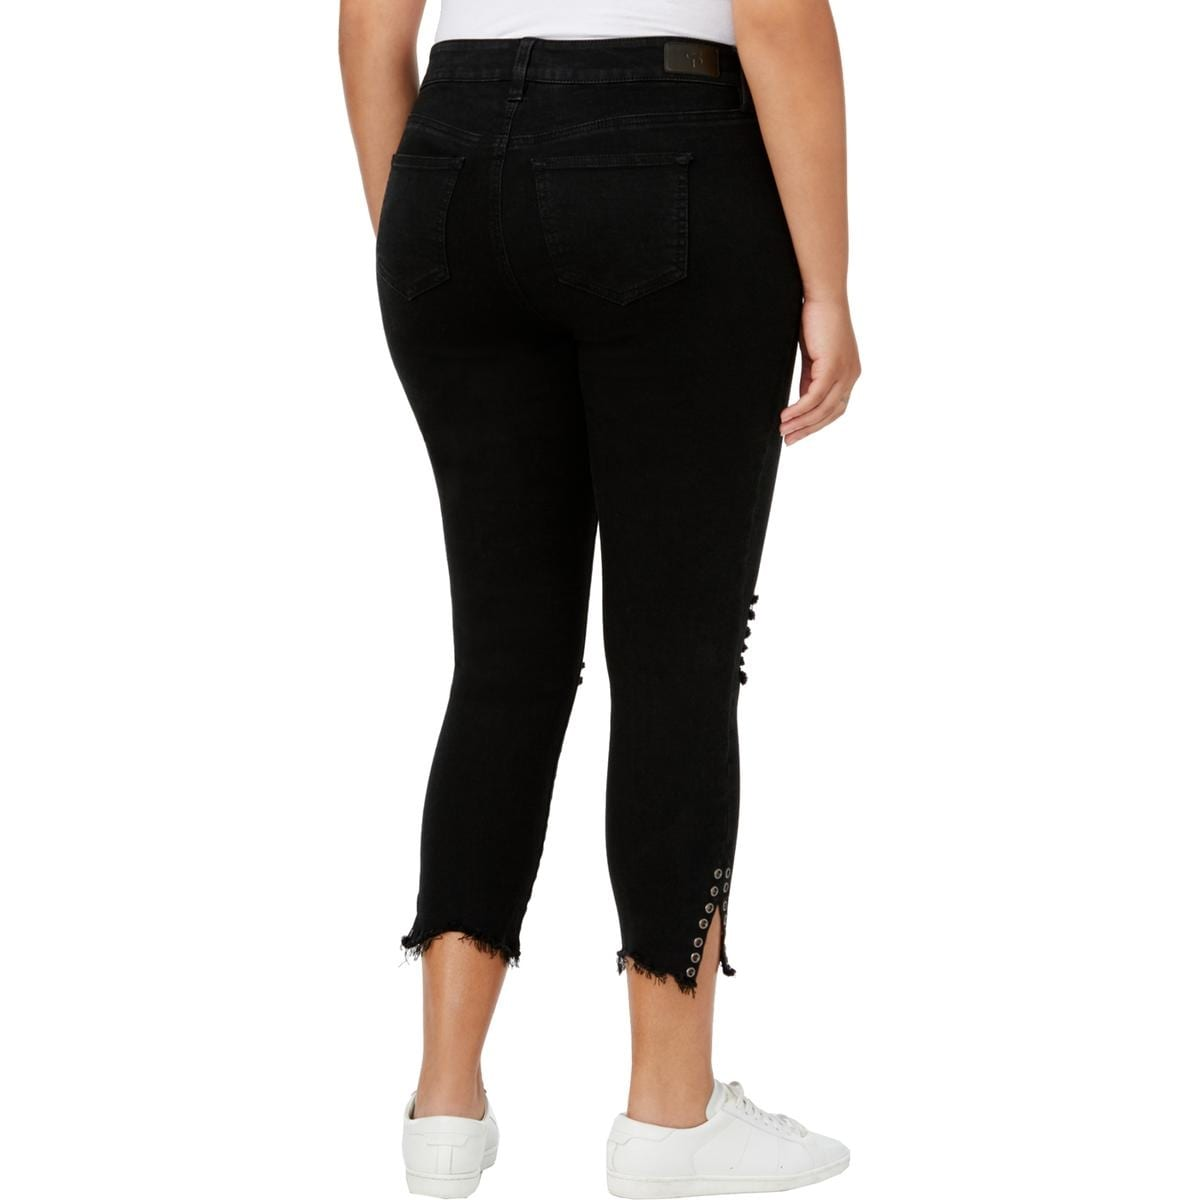 8ad26e8dc38 Shop Celebrity Pink Womens Plus Ankle Jeans Destroyed Raw Hem - Free  Shipping On Orders Over  45 - Overstock.com - 25093095